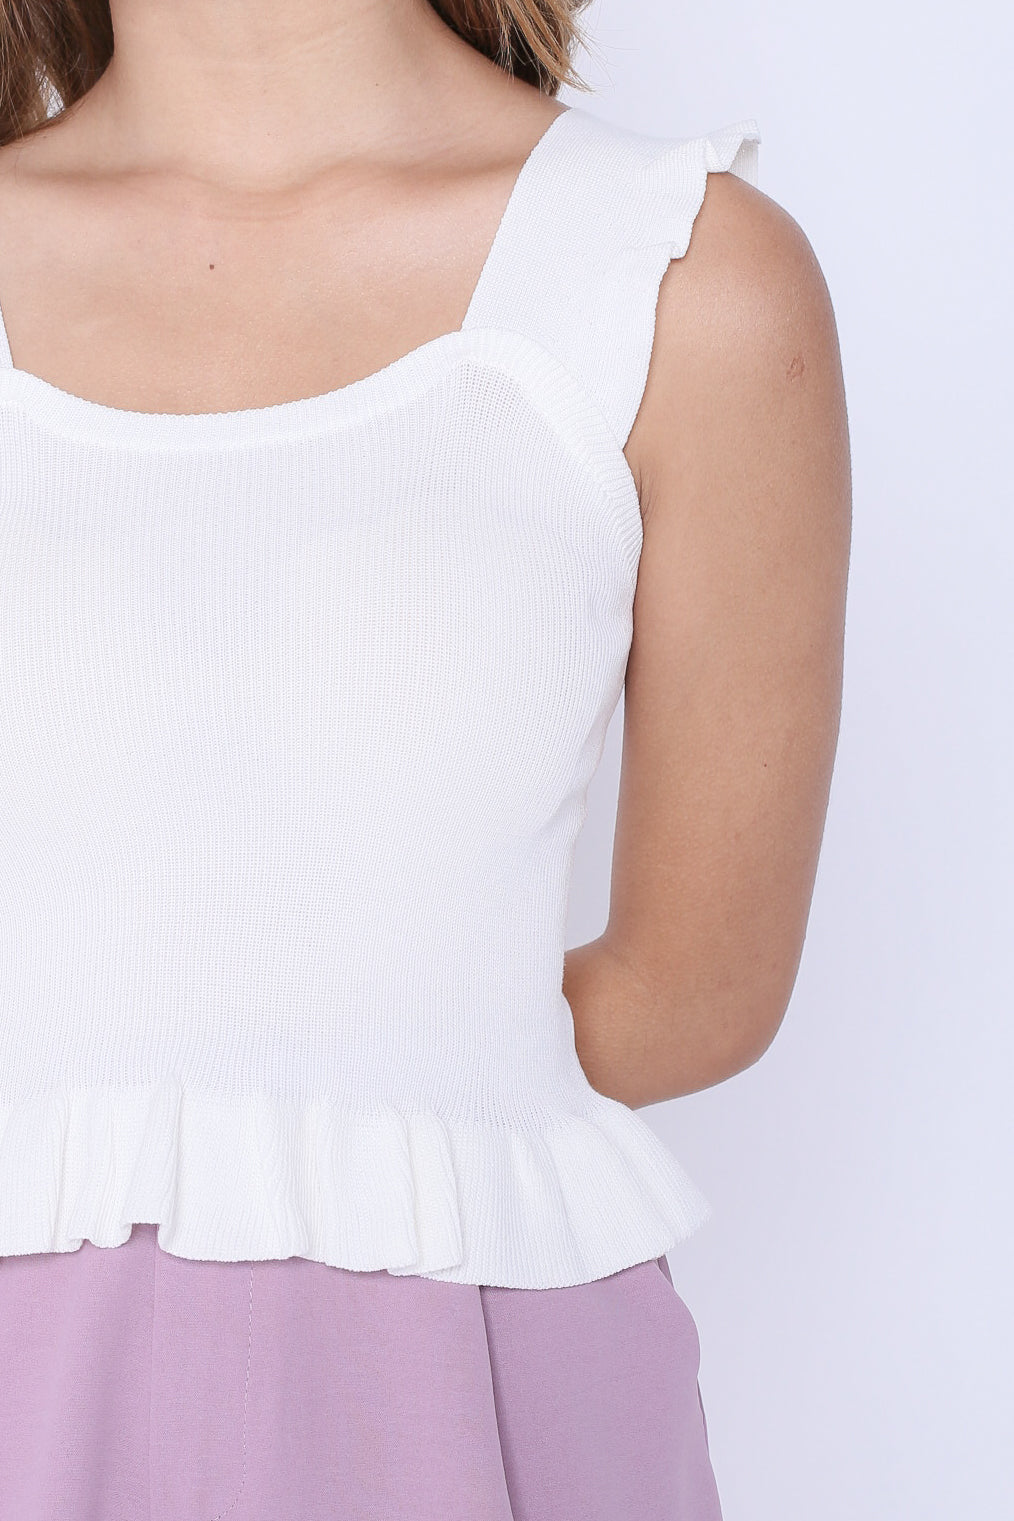 WILLABELLE RUFFLES KNIT TOP IN WHITE